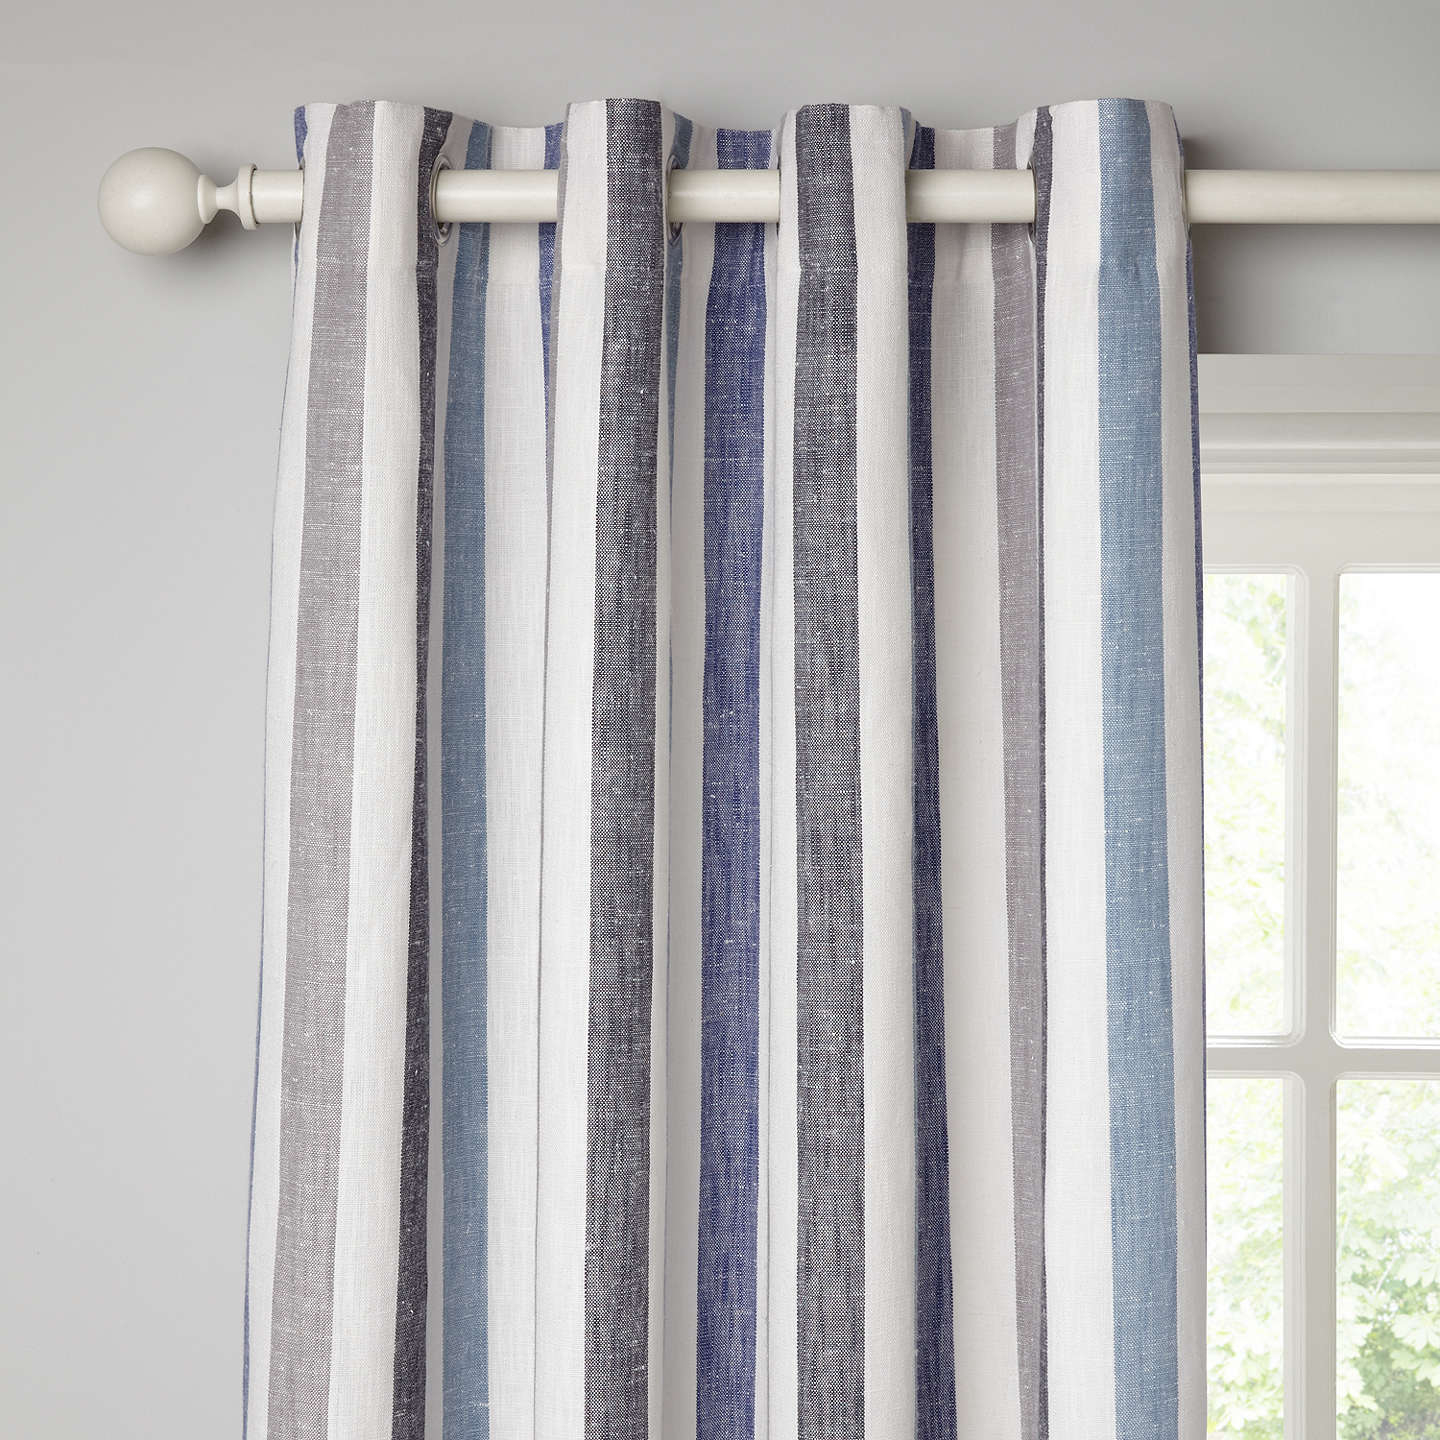 drape architectural flax model models blue pottery max belgian linen barn sheer curtains fbx door